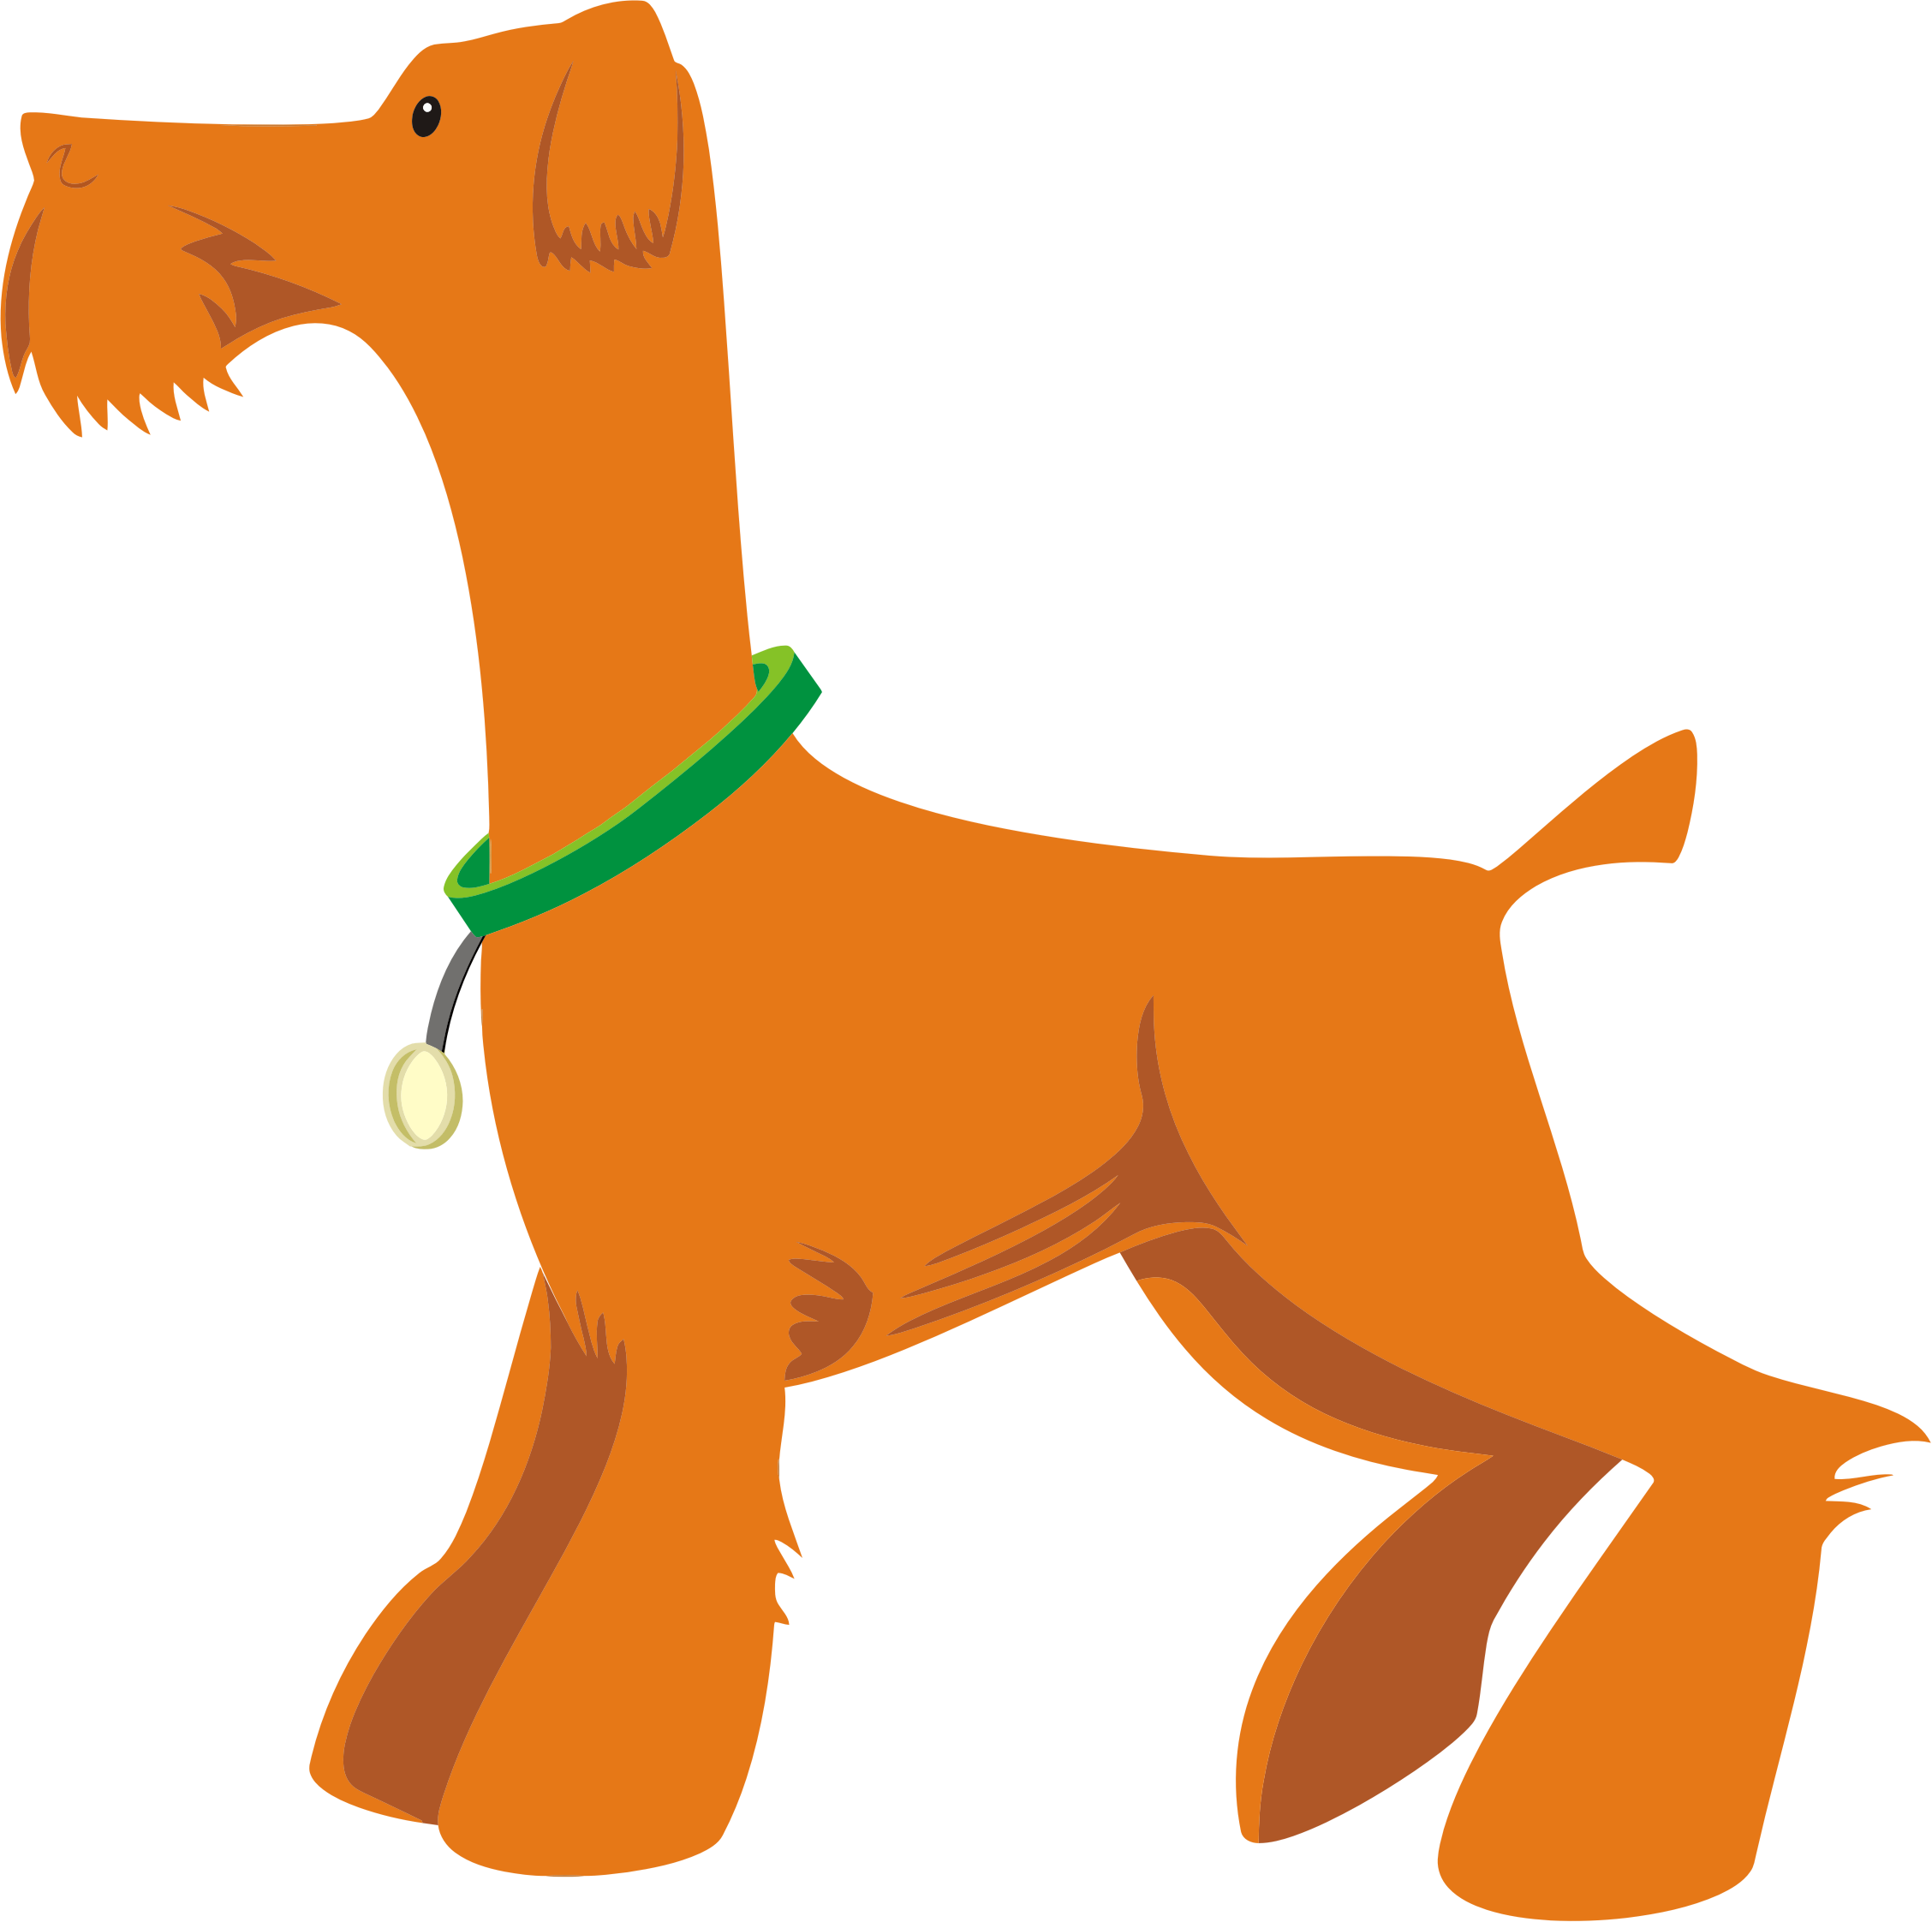 Orange Dog Profile by GDJ